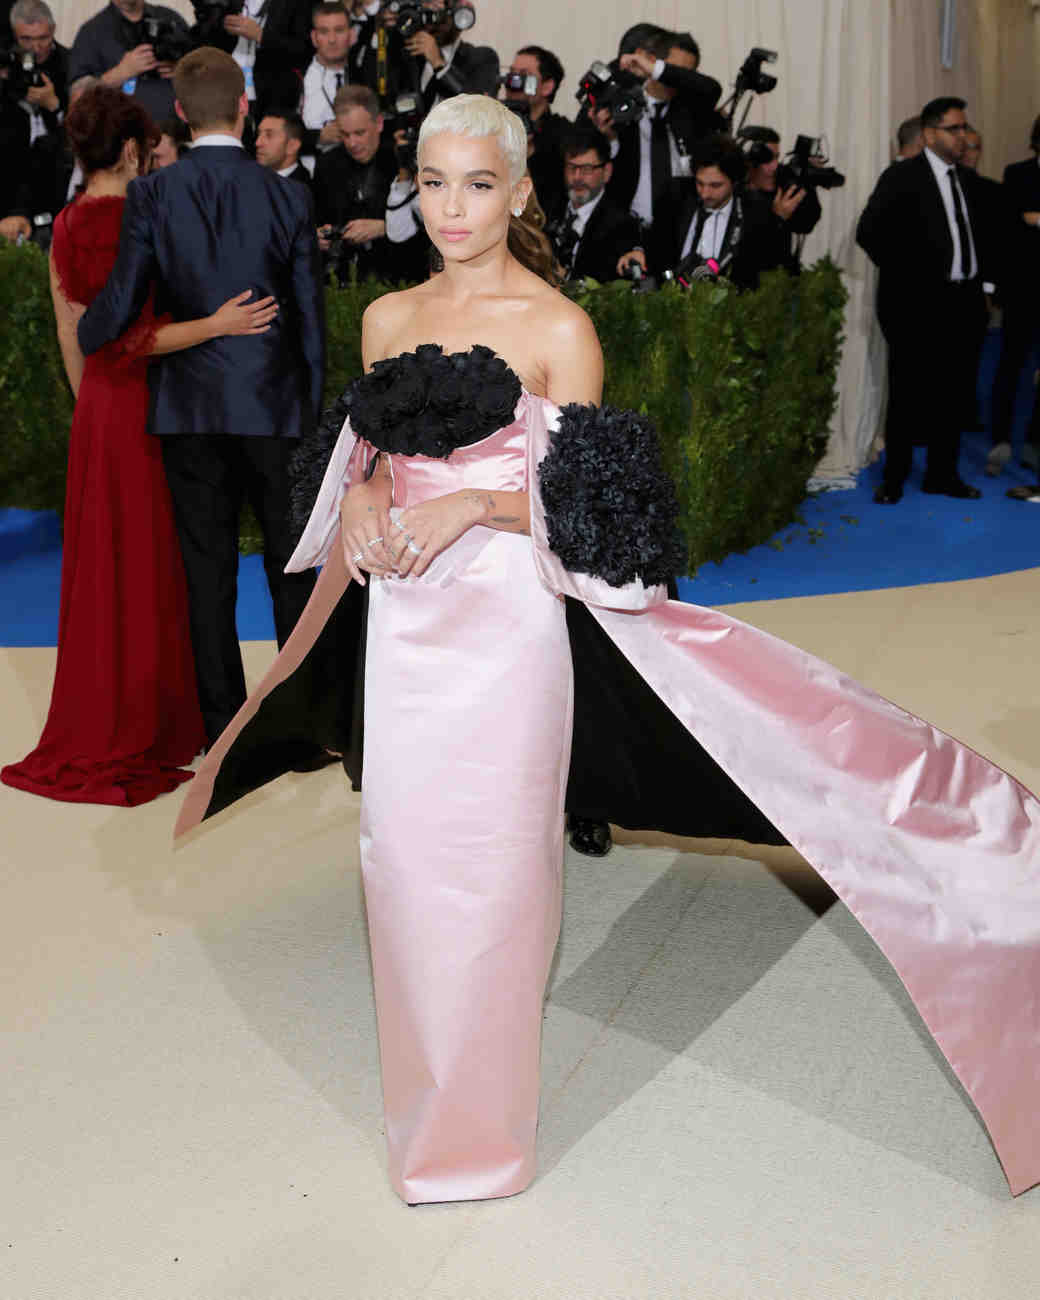 Met Gala 2017 The Best Dresses To Inspire Your Bridal